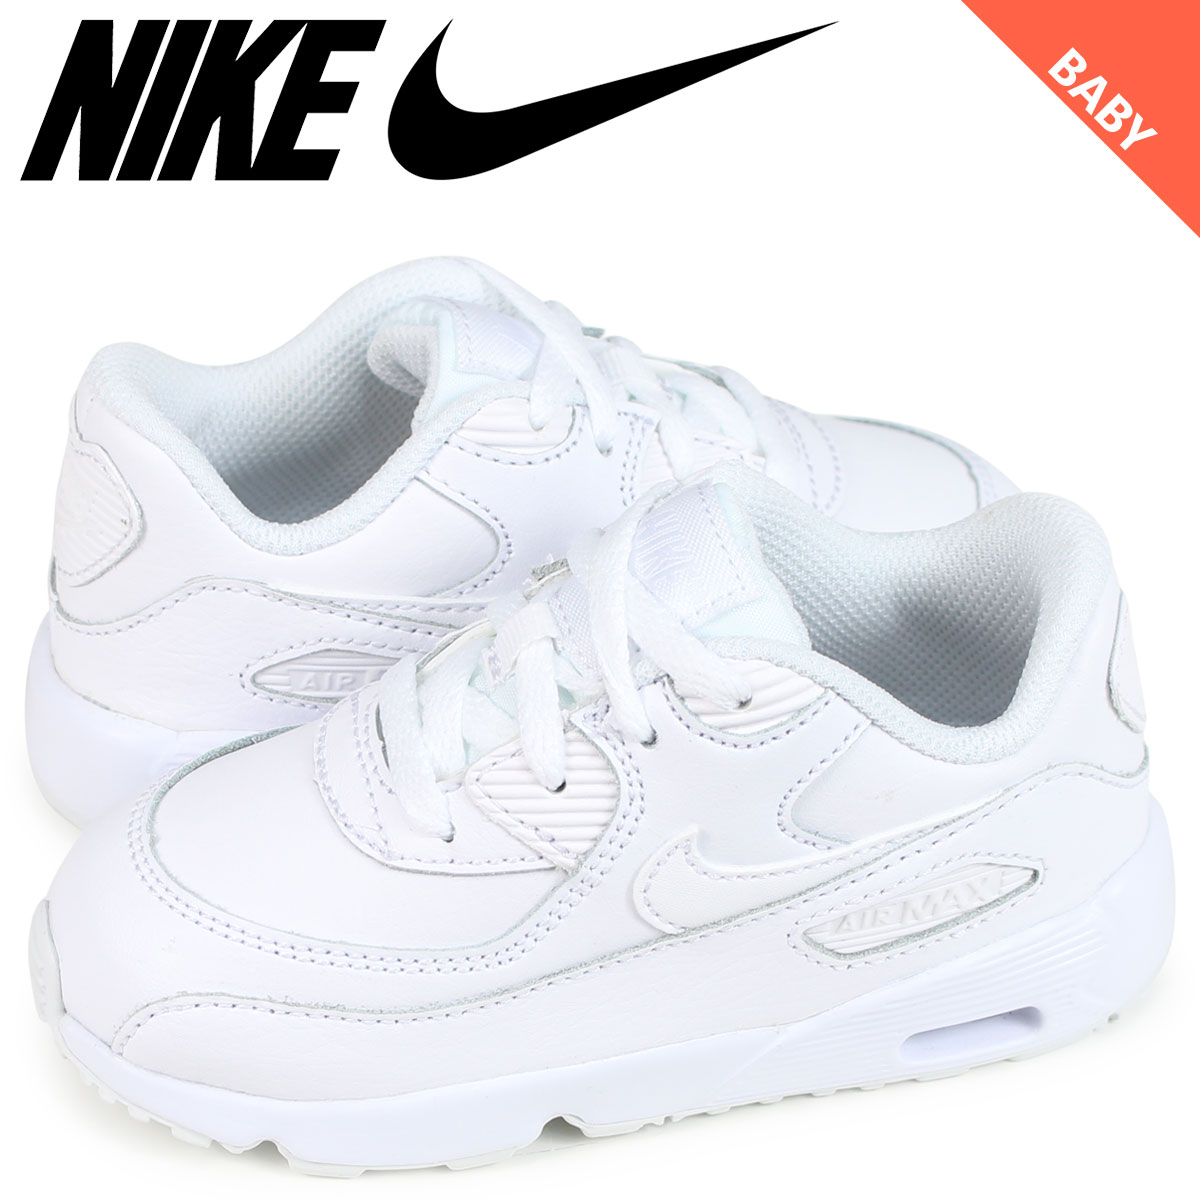 sale retailer c3926 38cee NIKE AIR MAX 90 LEATHER TD Kie Ney AMAX 90 baby sneakers 833,416-100 white